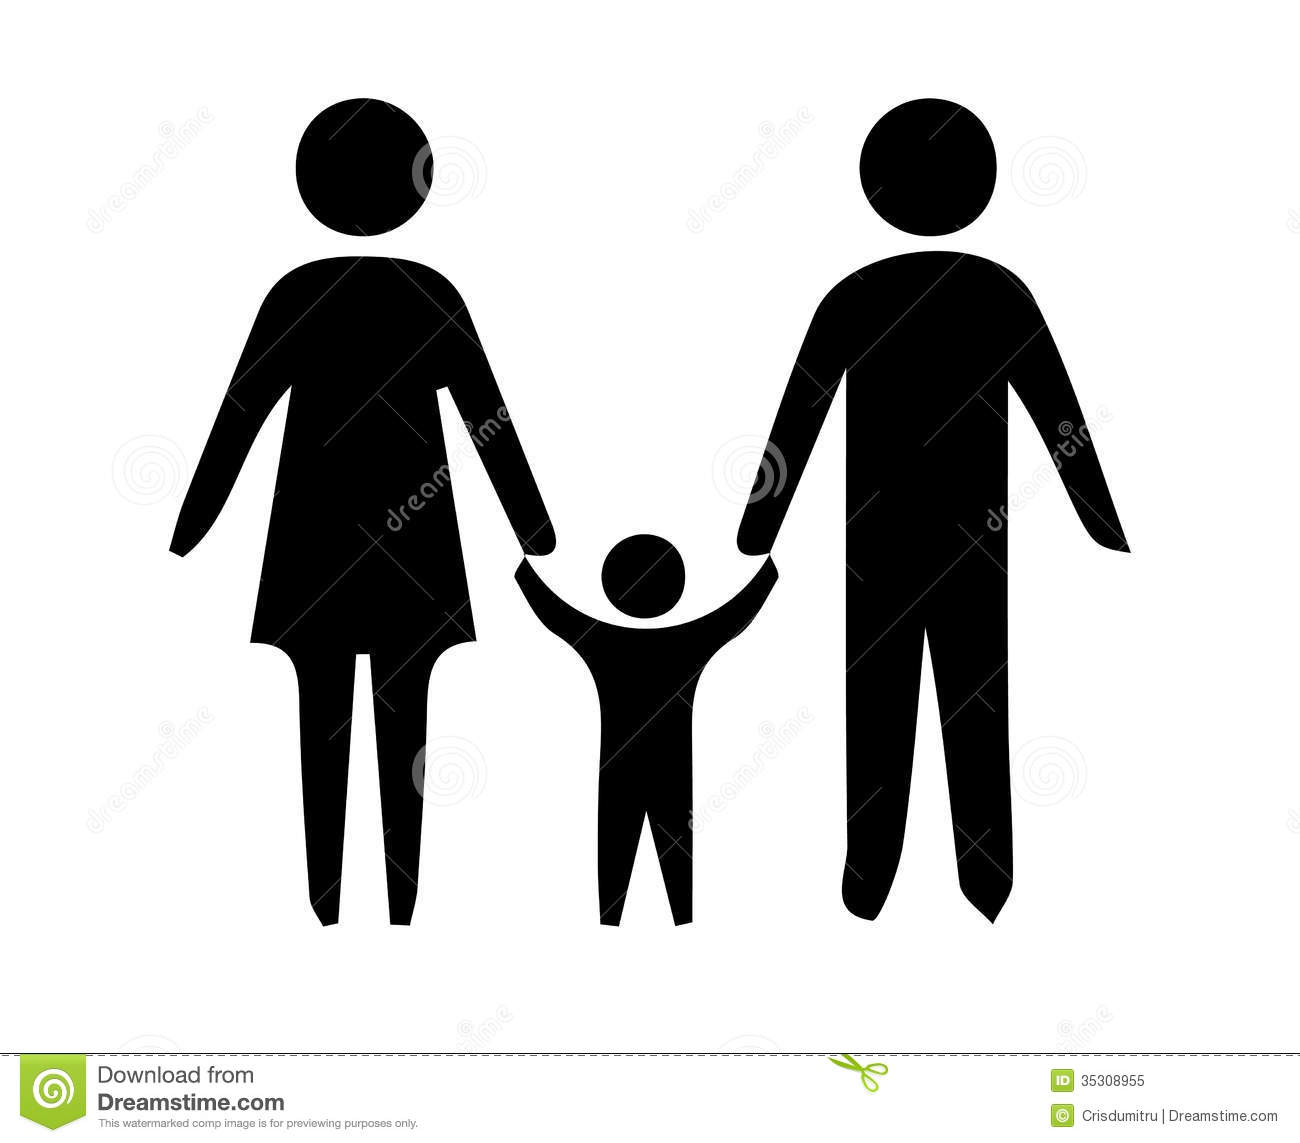 family-illustration-happy-35308955.jpg